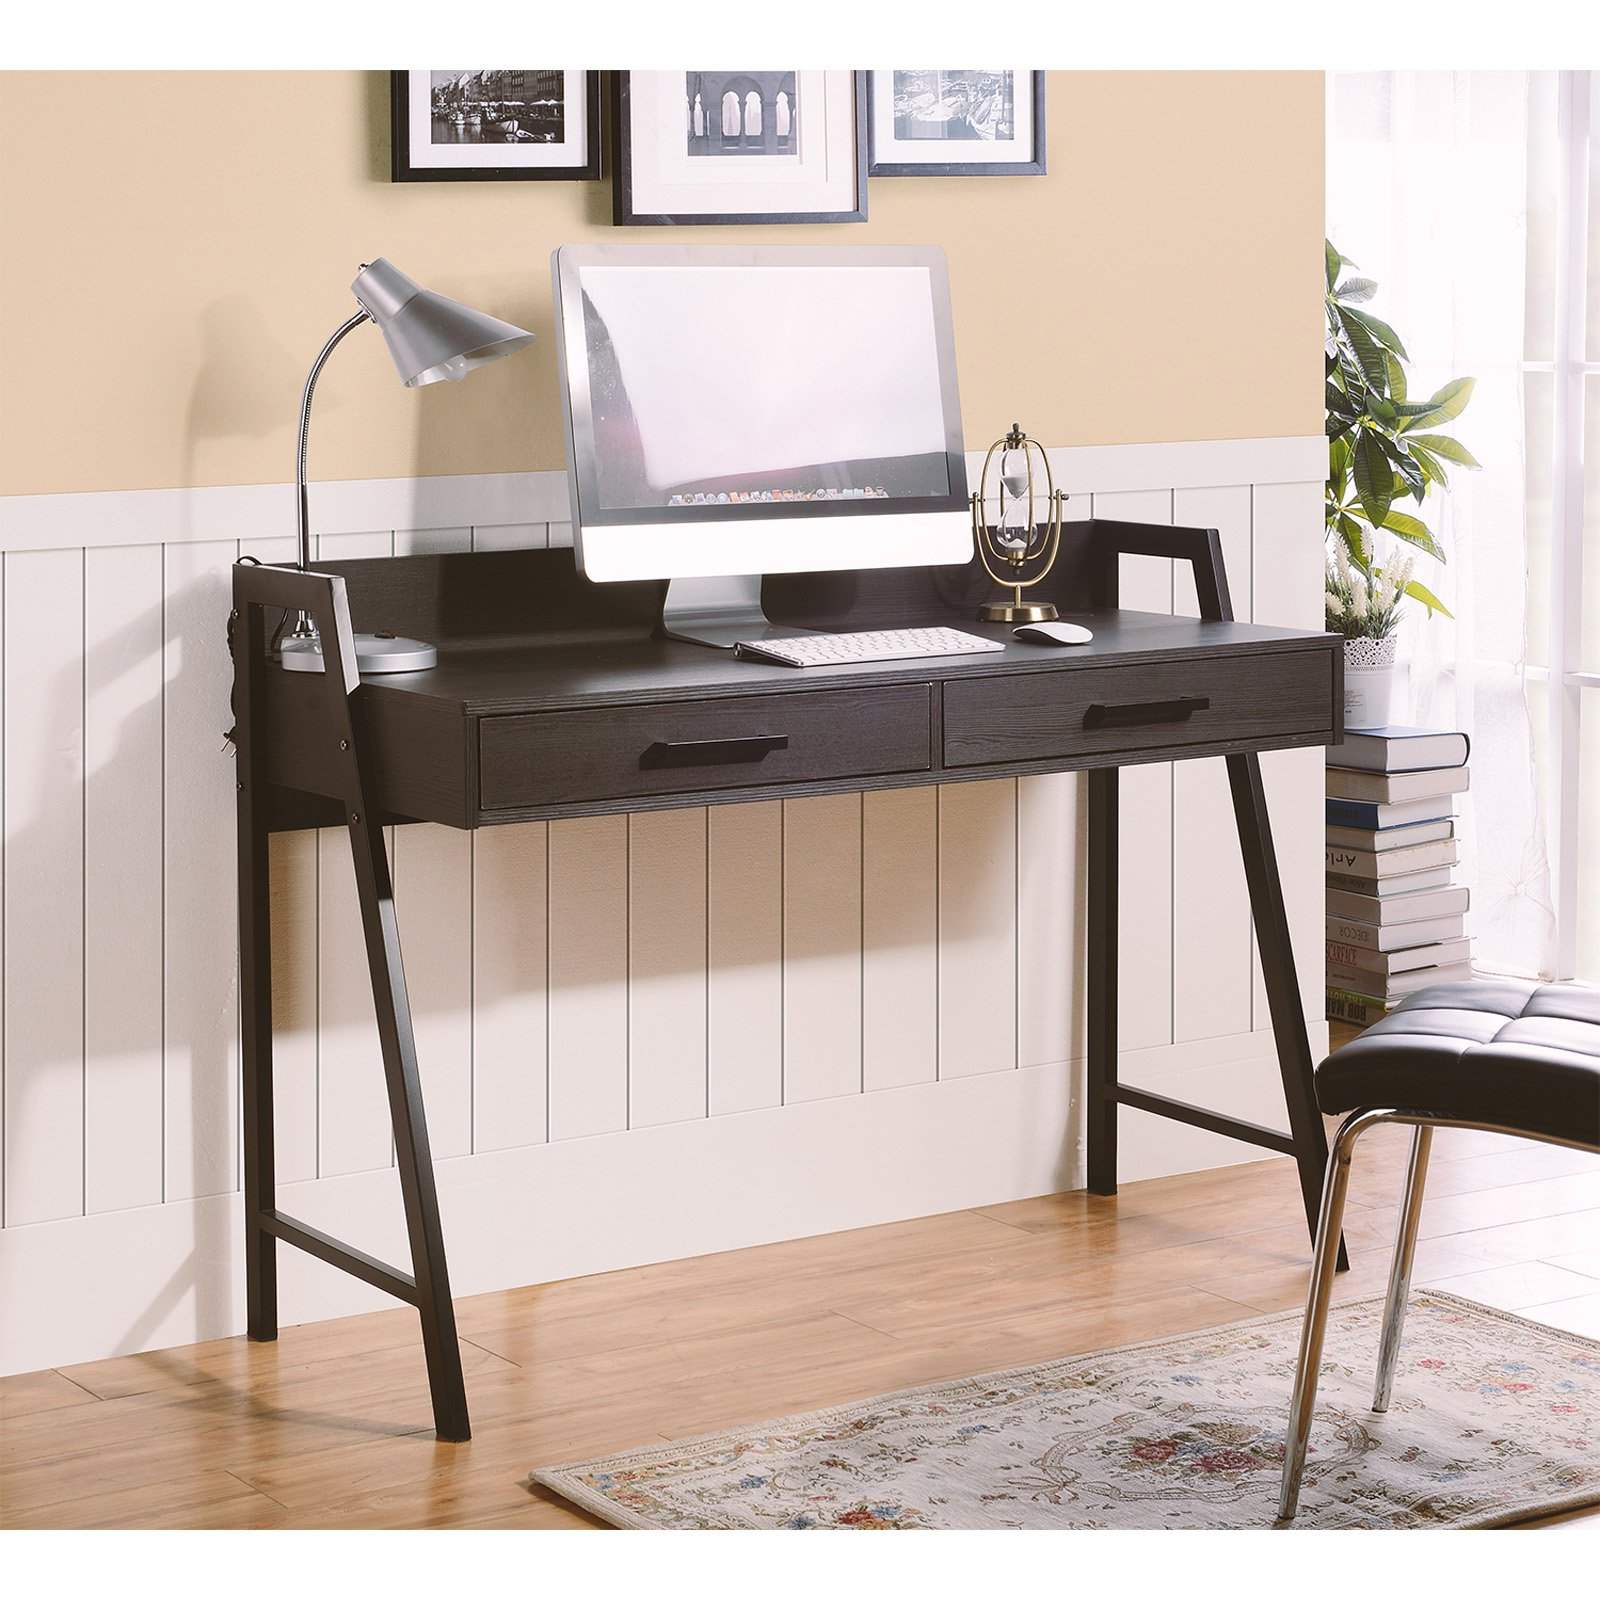 Homestar Rosalind writing desk in Dark Oak Finish